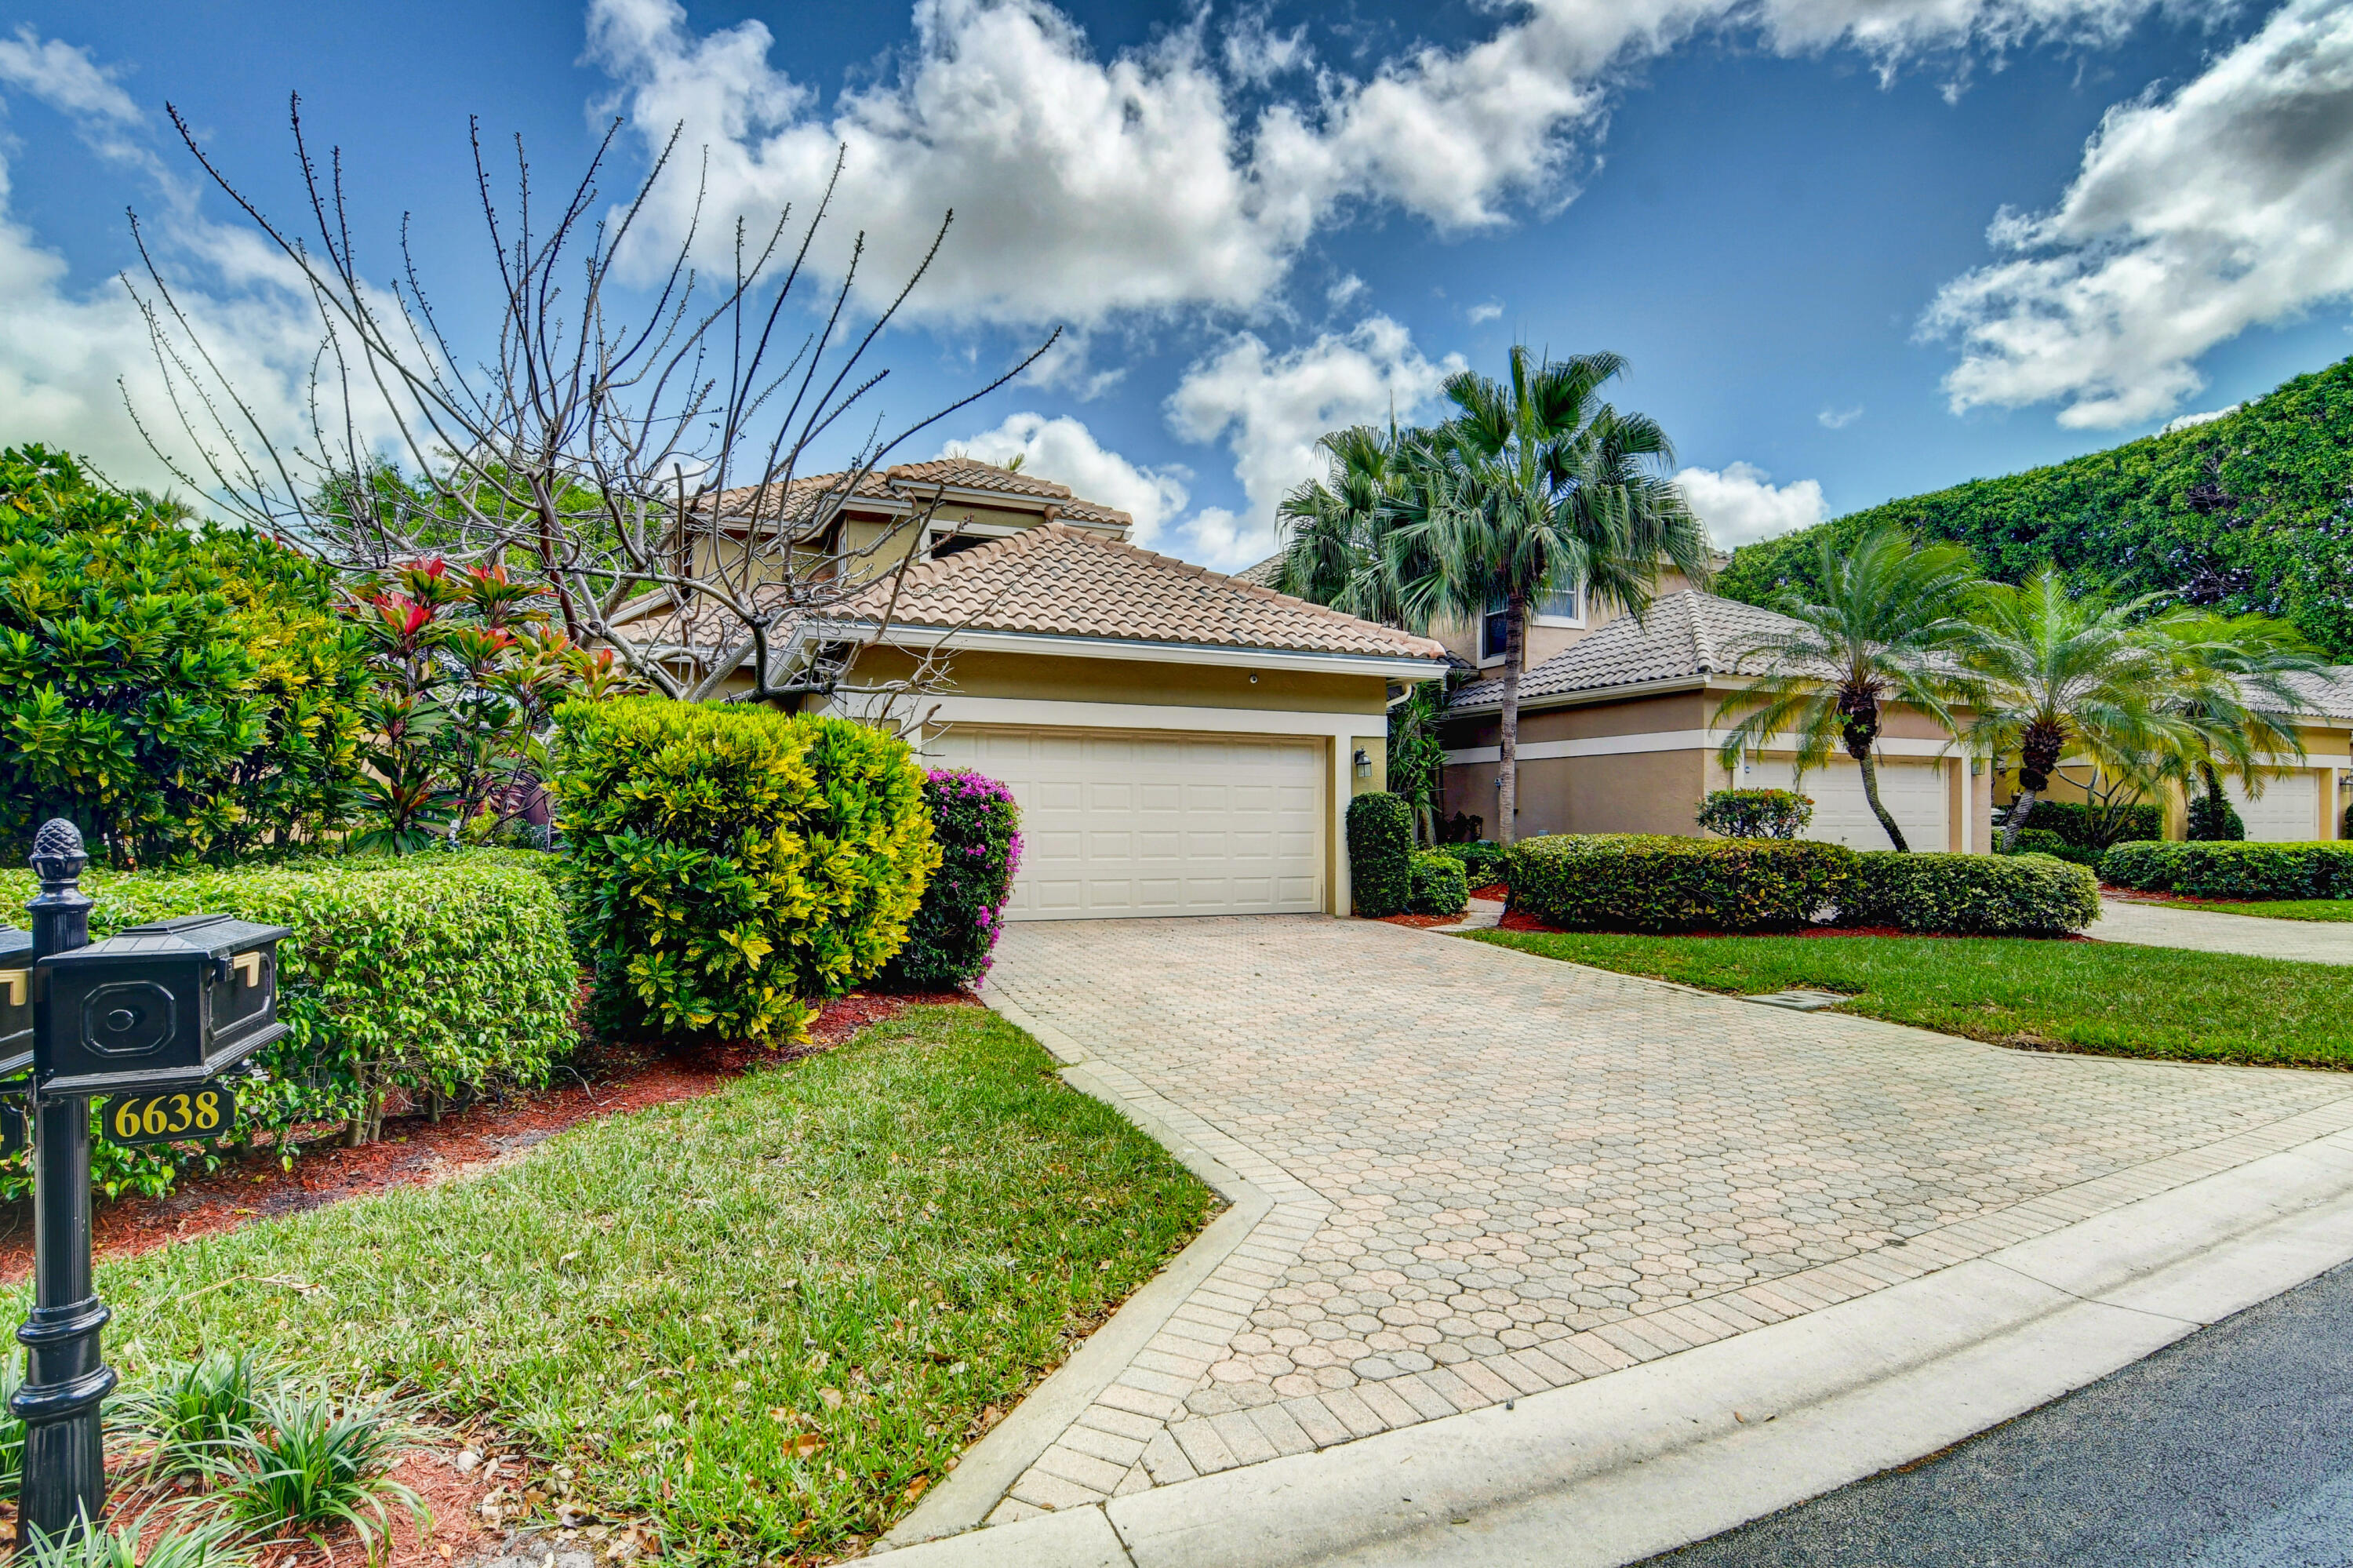 6638 NW 27th Avenue  For Sale 10722140, FL